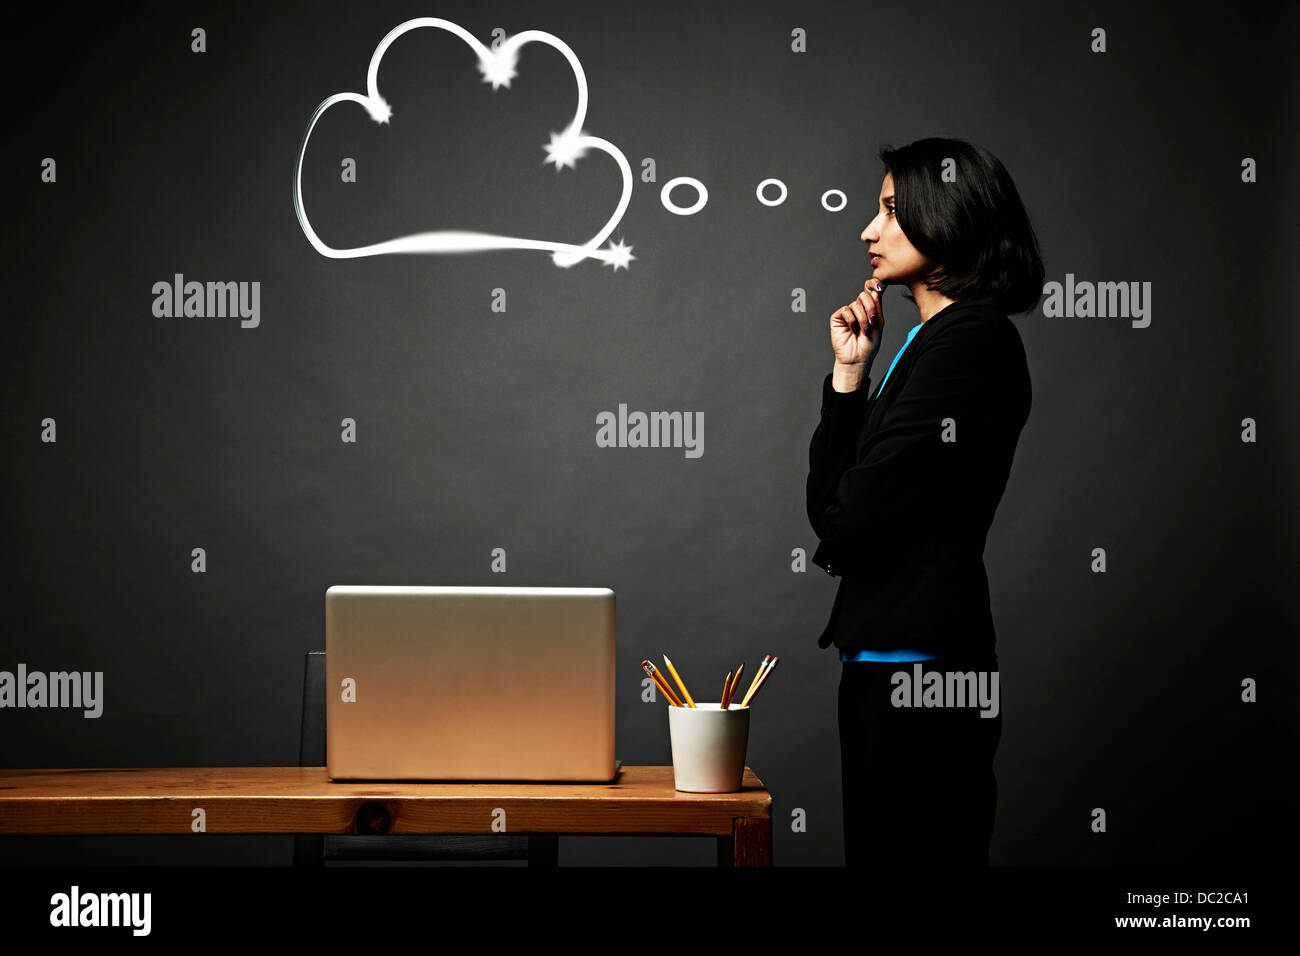 Woman contemplating problem - Stock Image